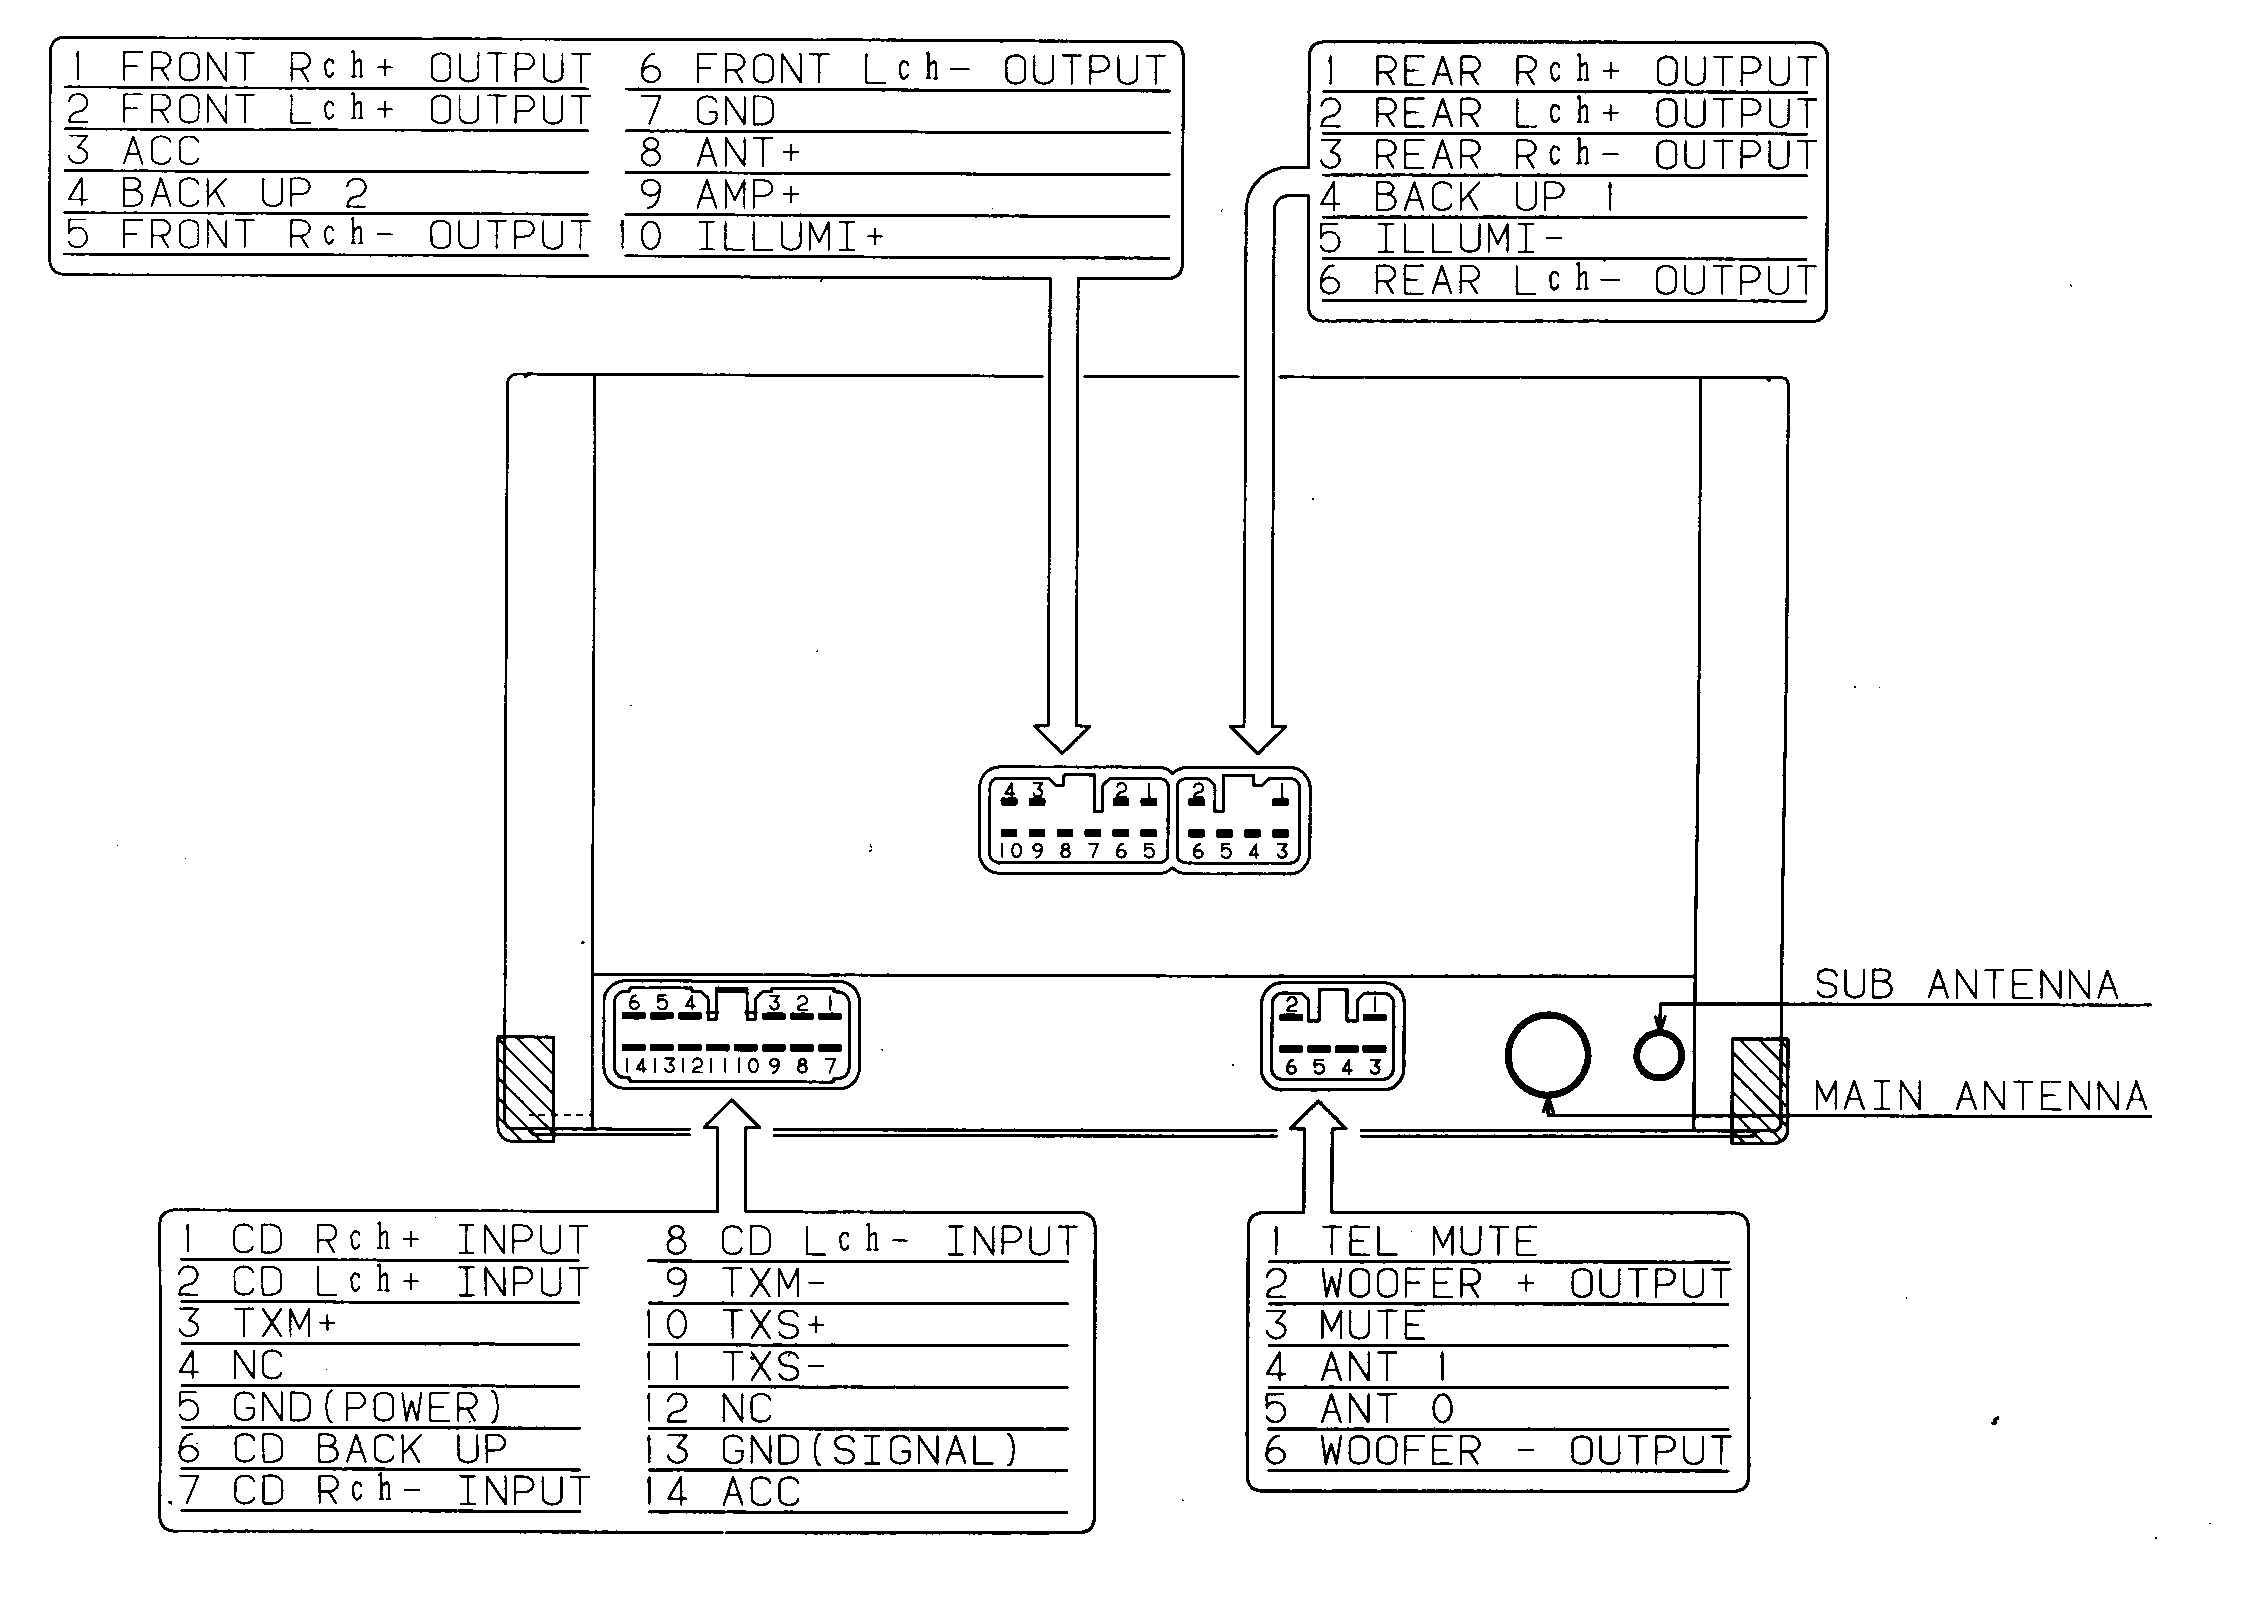 Lexus car stereo wiring diagram harness pinout connector wire lexus rx330 radio wiring diagram lexus rx330 parts diagram 2002 Lexus RX300 Interior at eliteediting.co